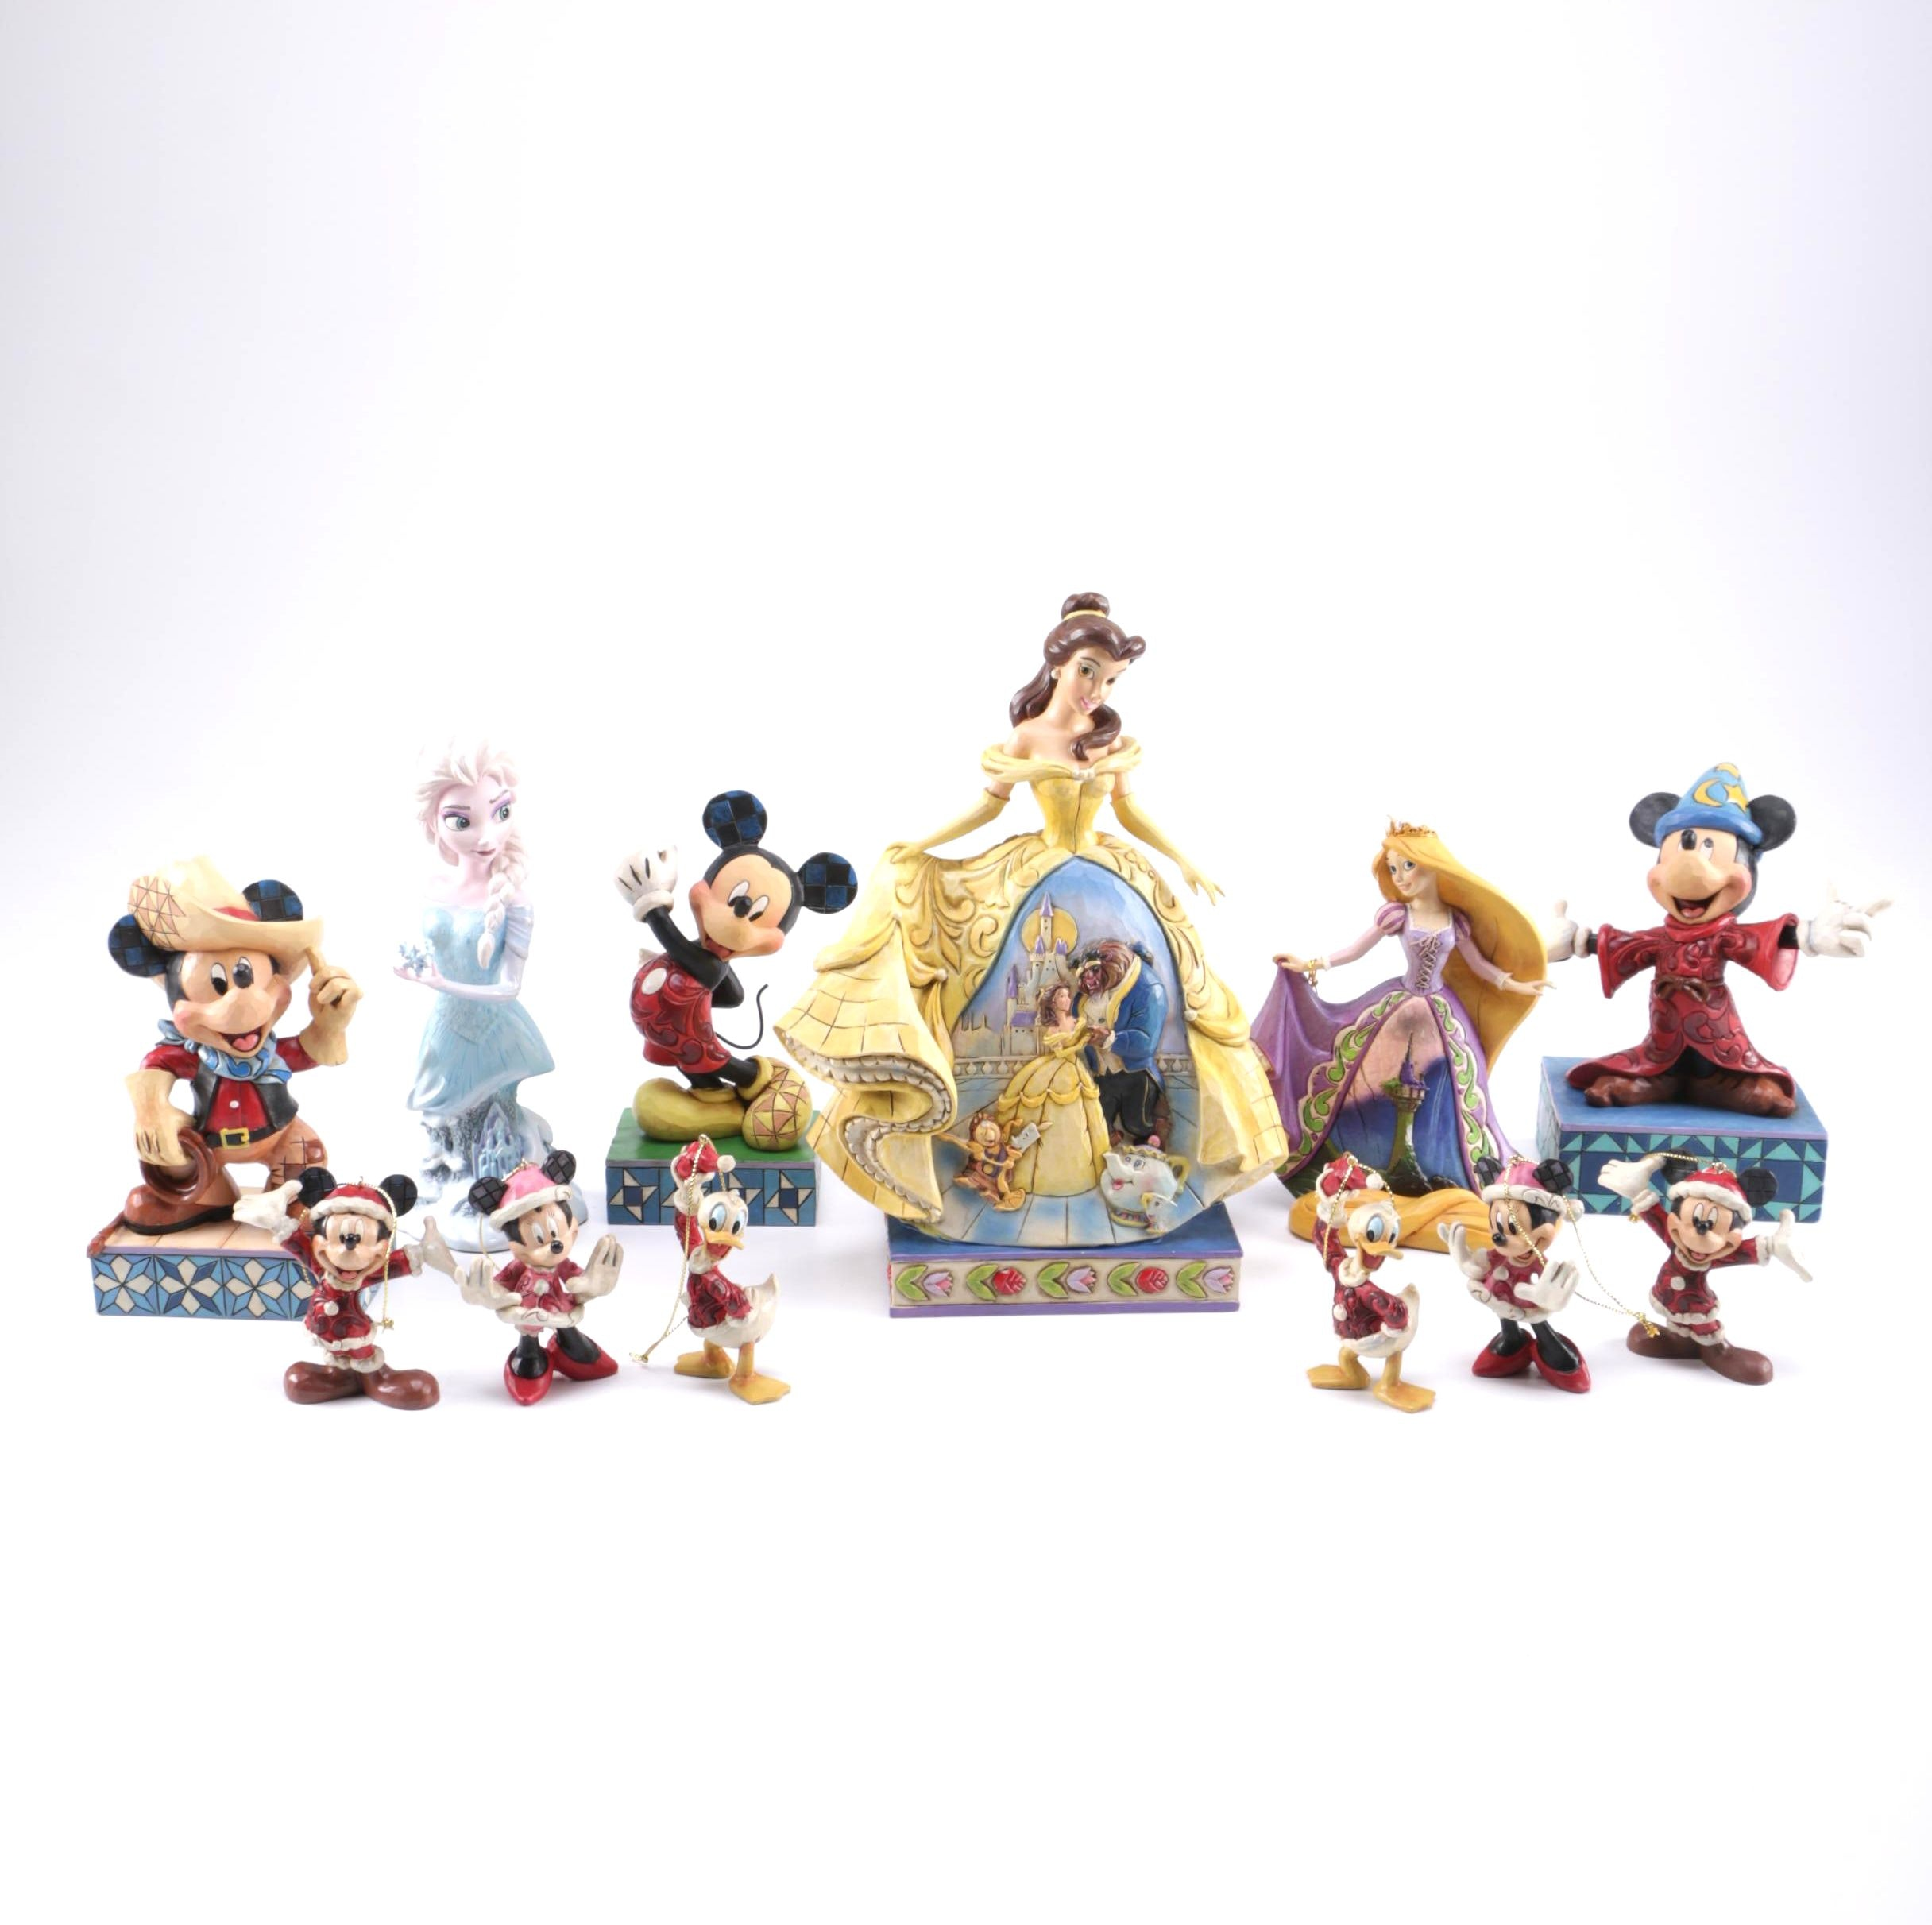 Collection of Disney Showcase Figurines